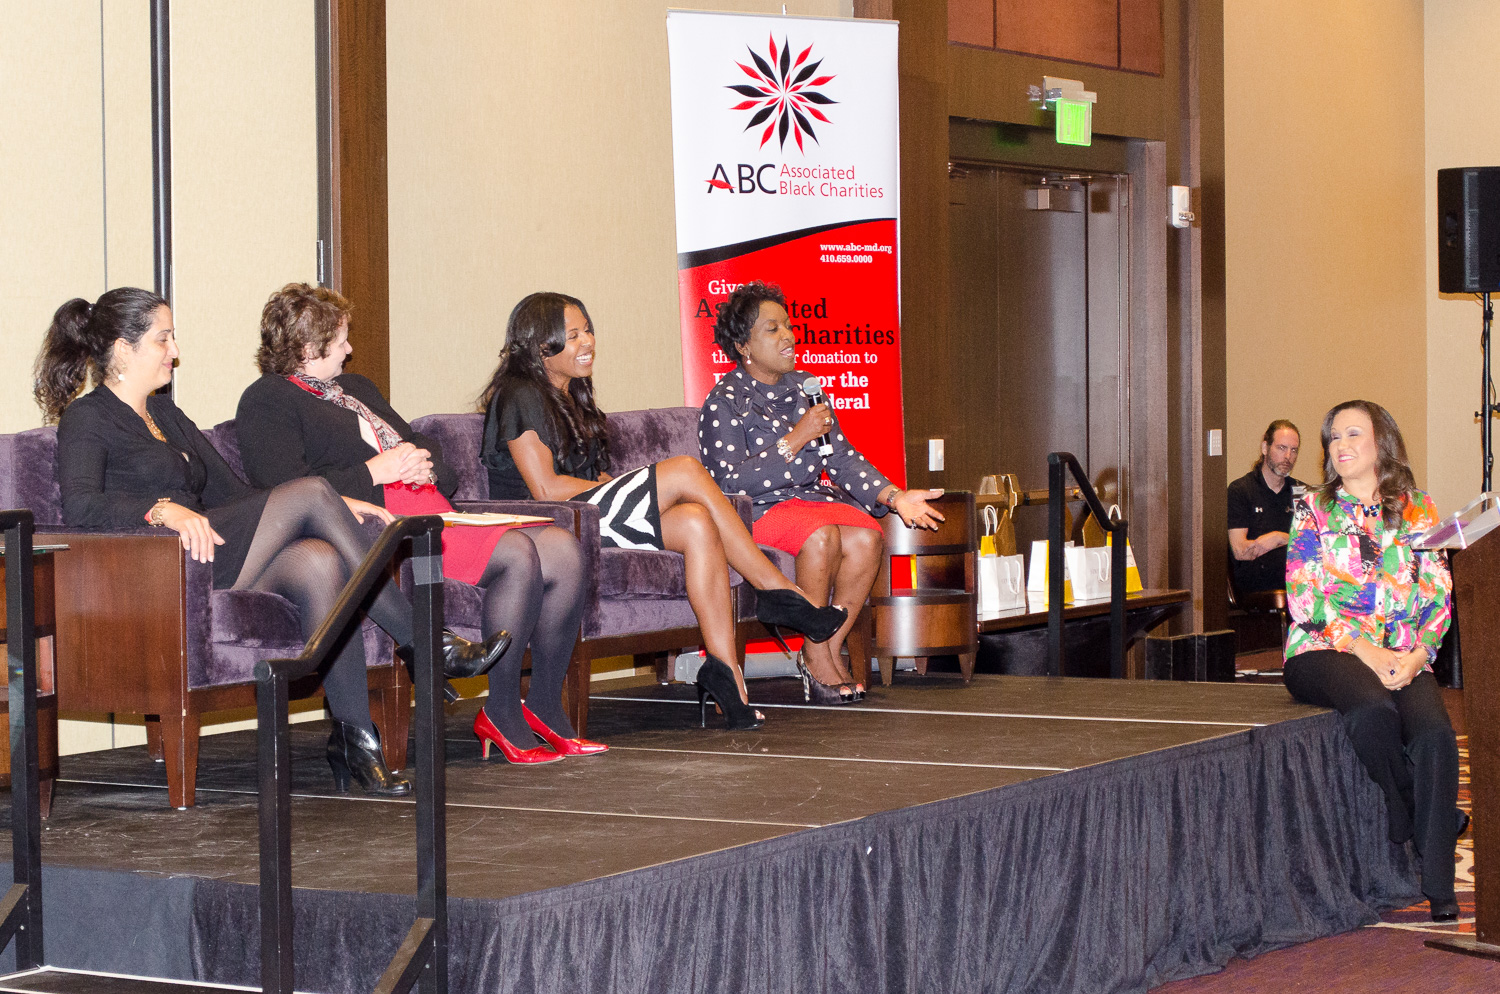 Speakers at the Women on the Move event